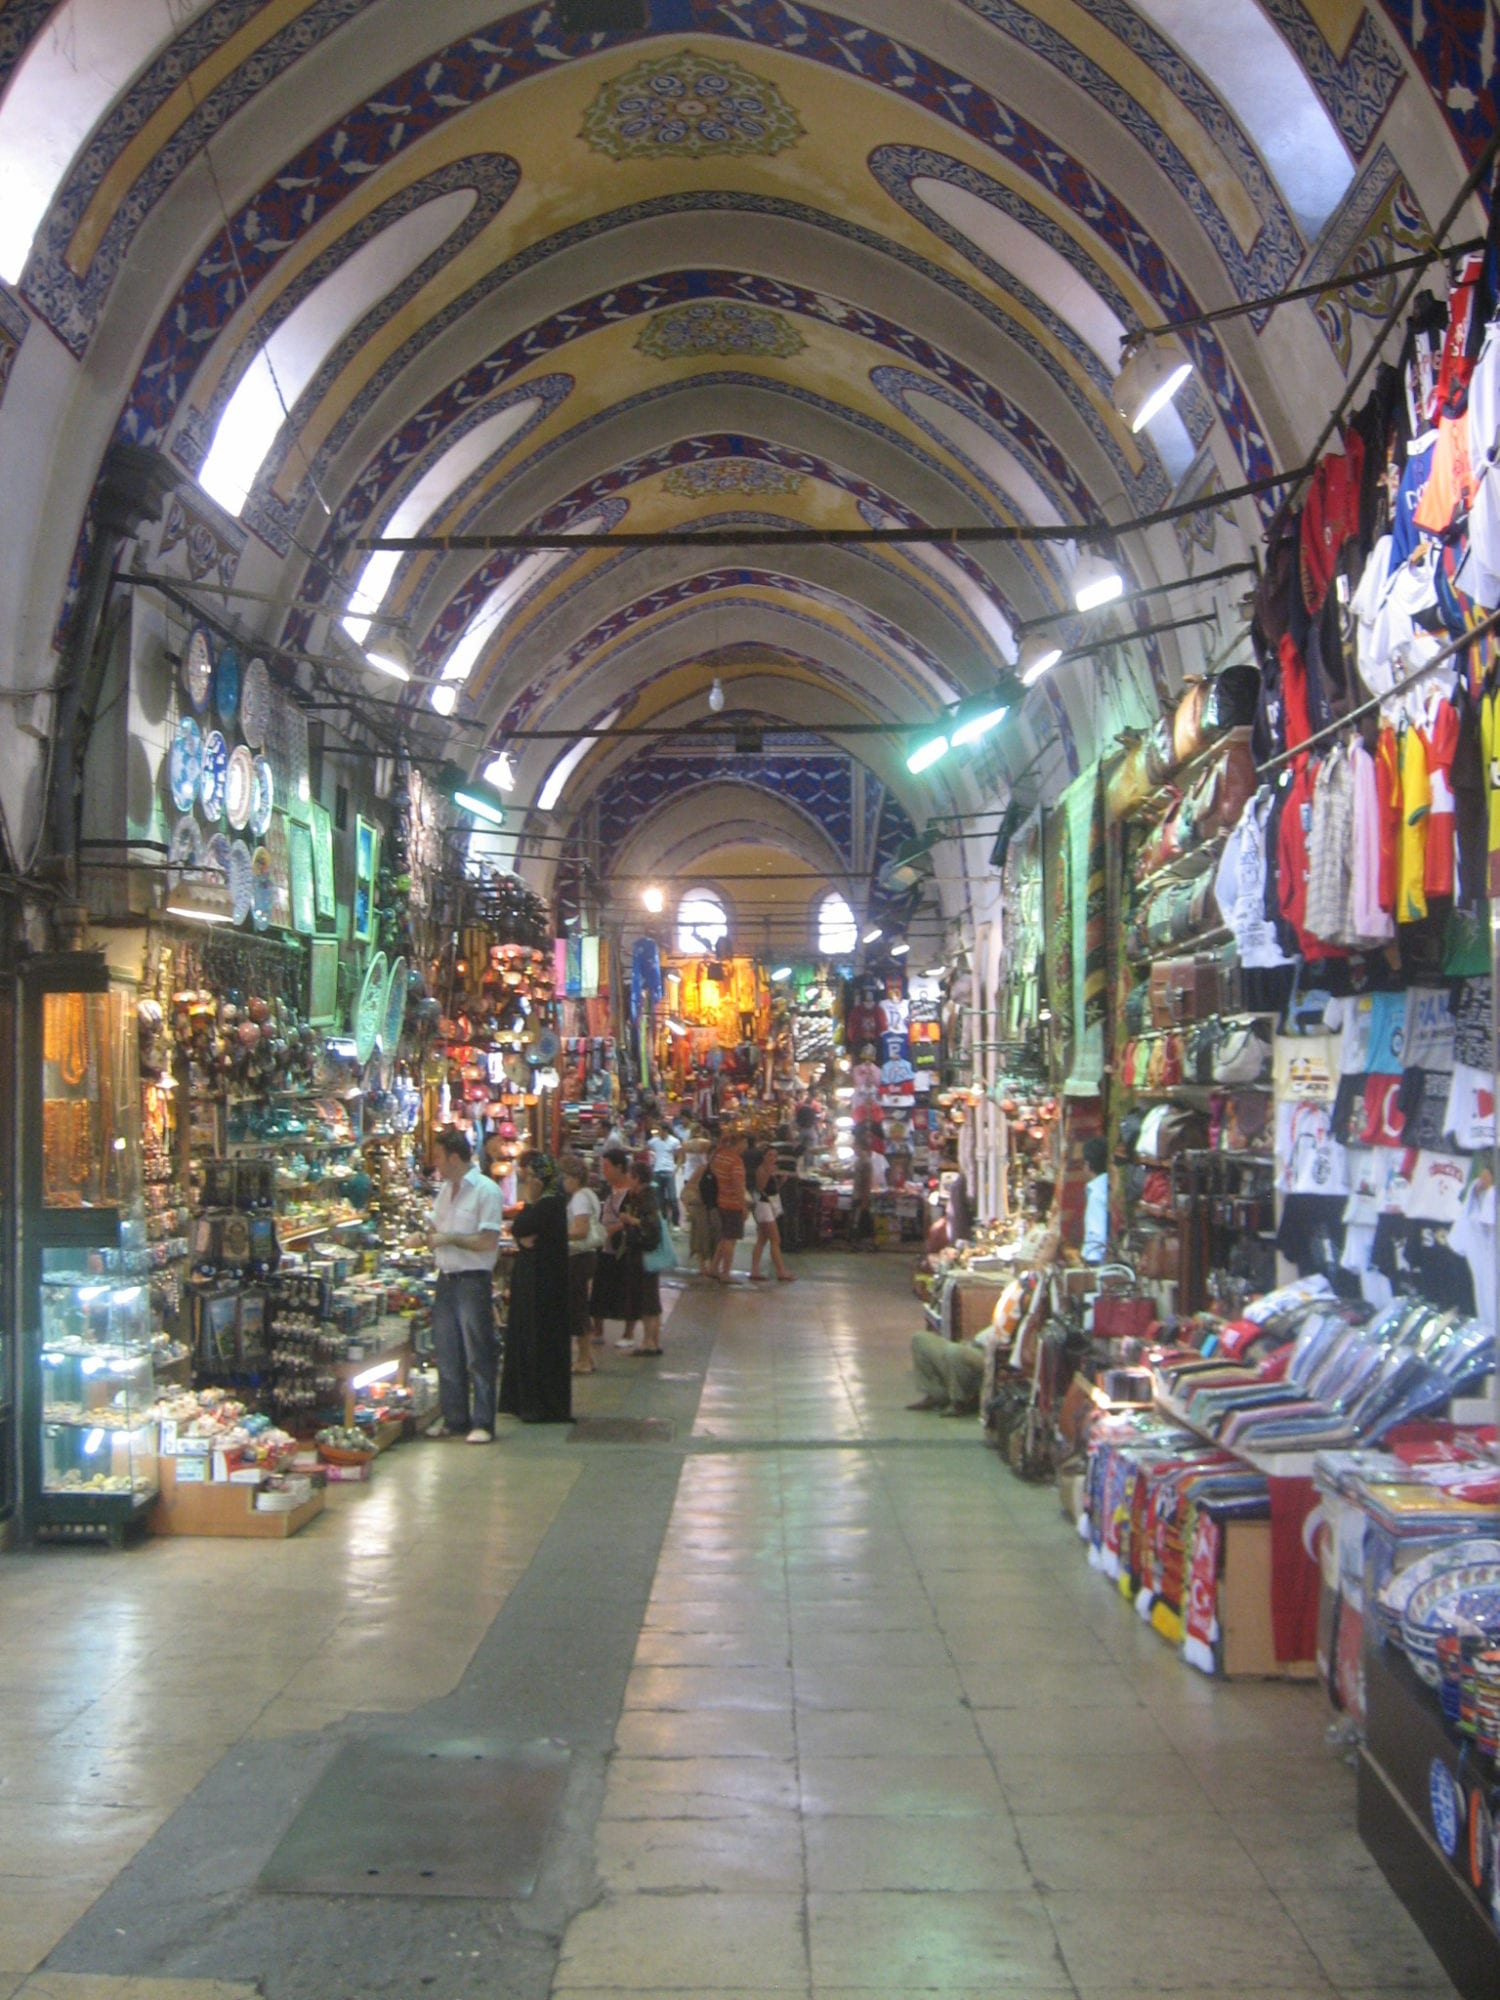 Michelle Spalding visiting the Grand Bazzar Istanbul Turkey